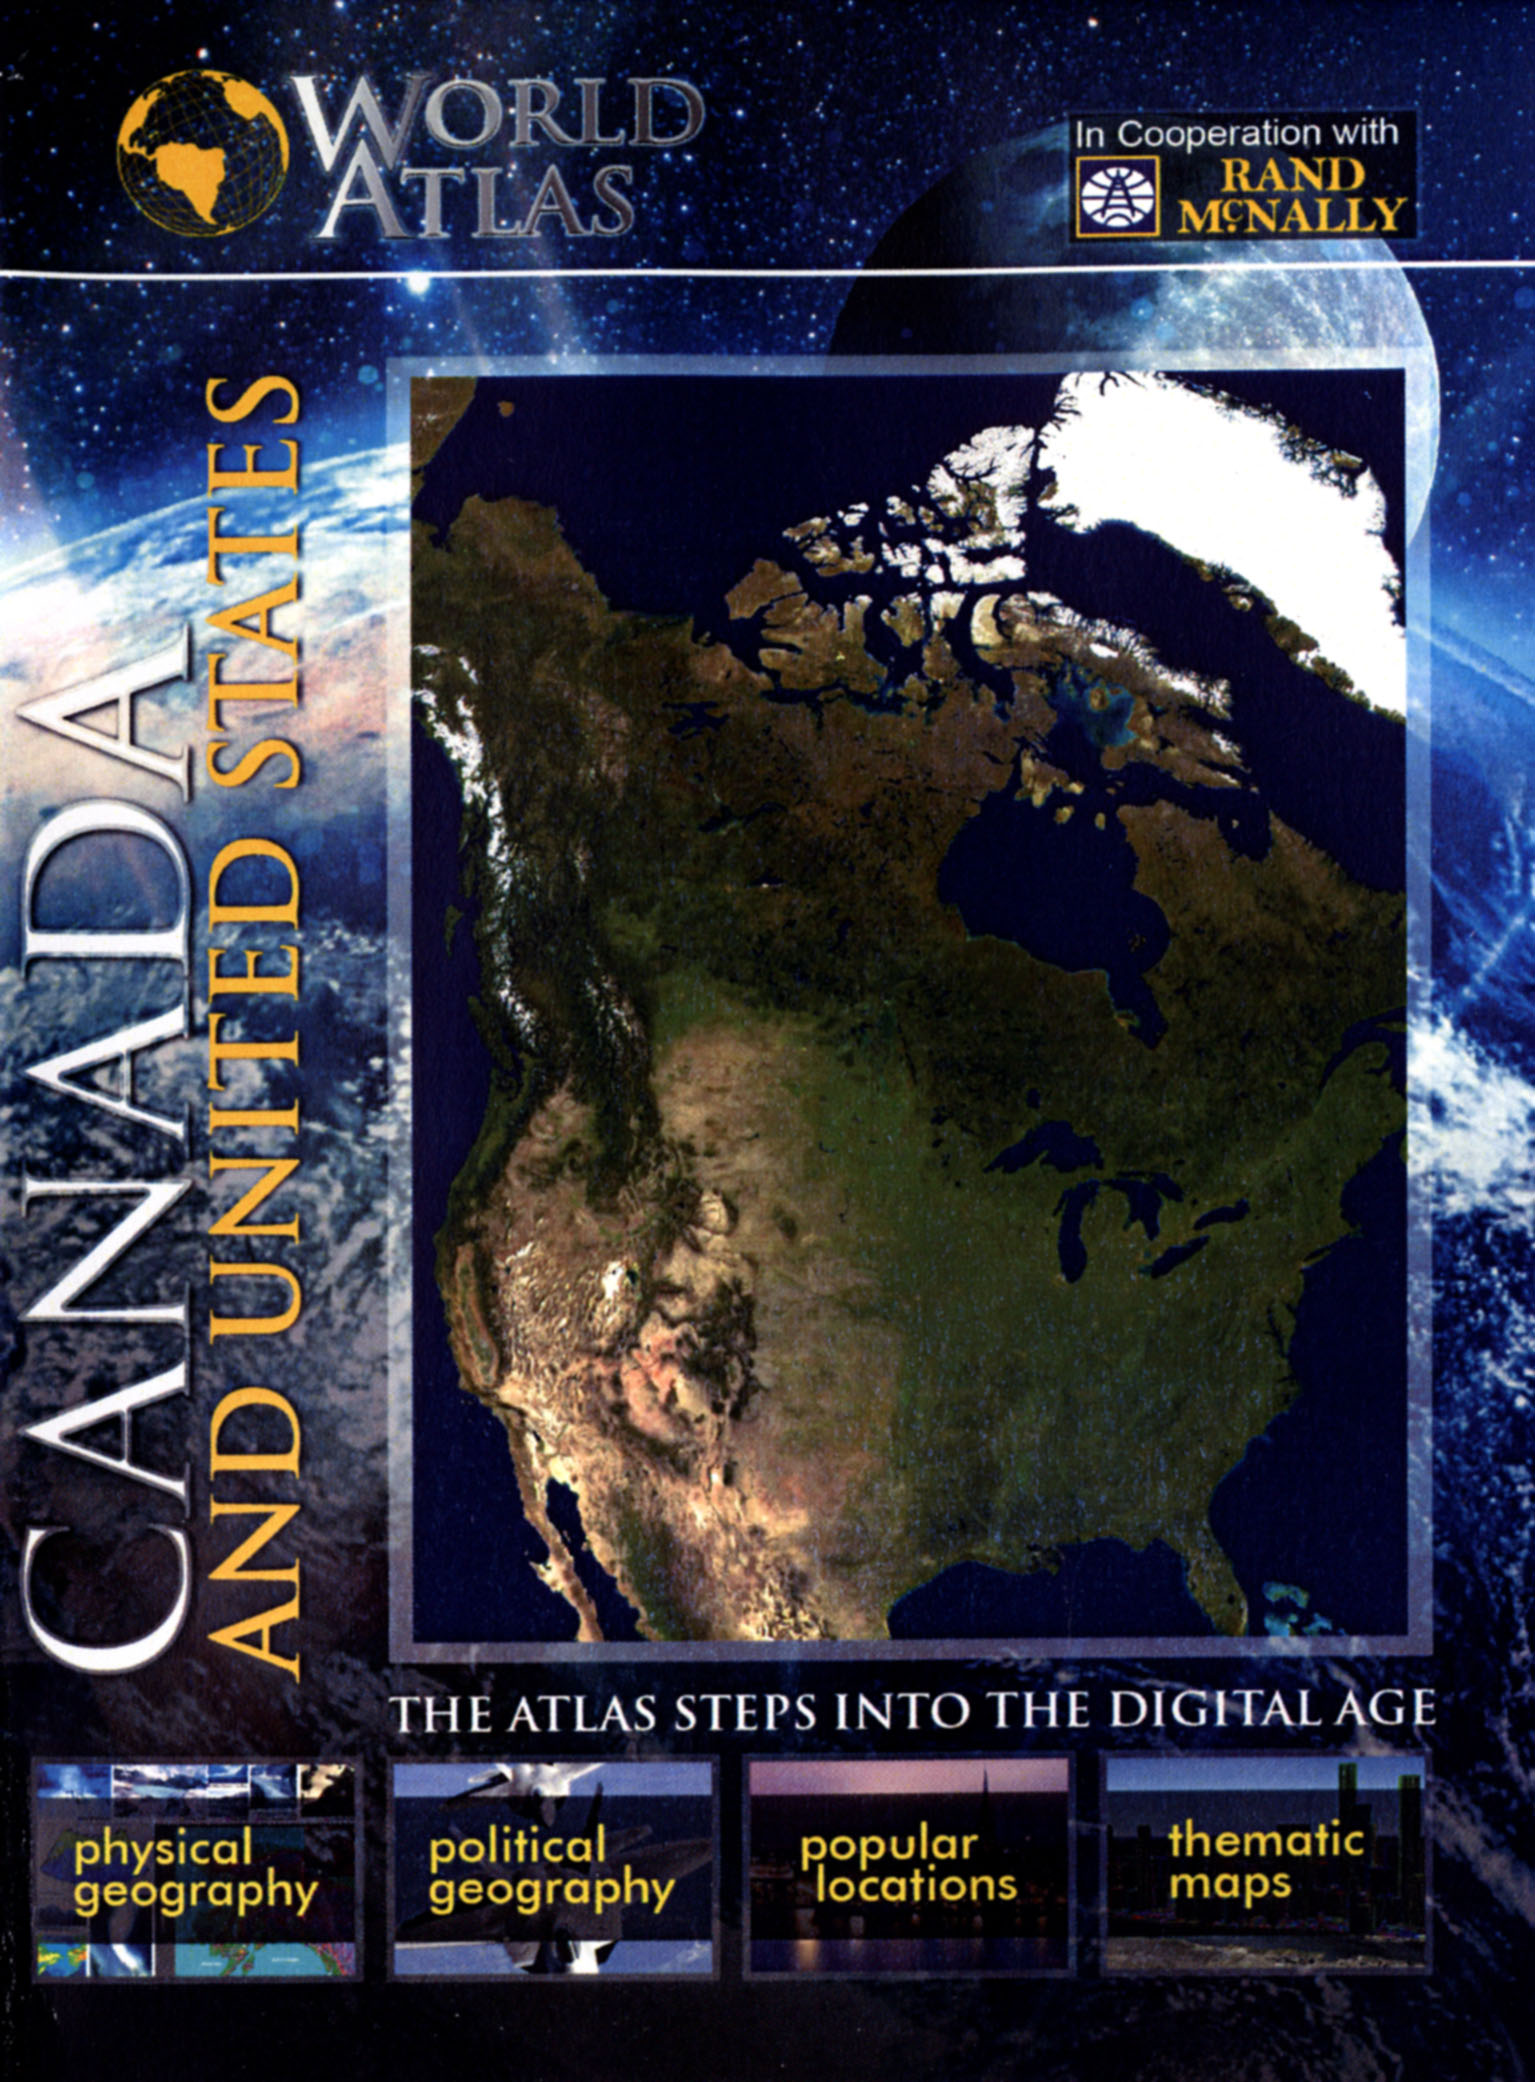 The World Atlas: Canada and United States